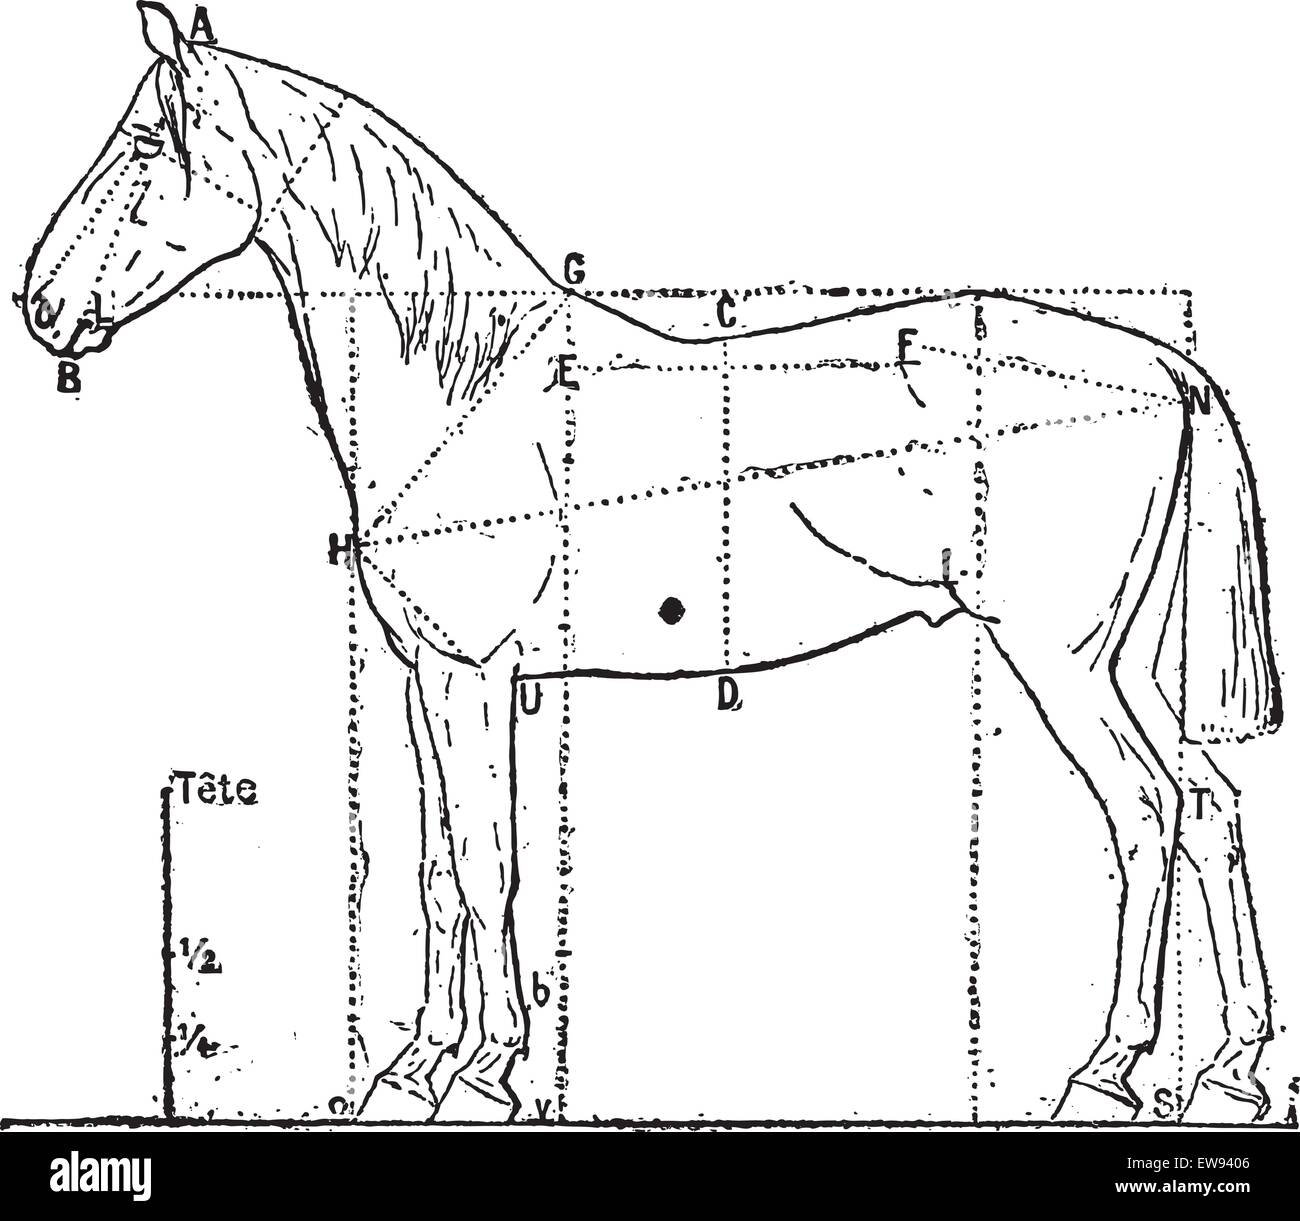 Horse Anatomy Illustration Stock Photos & Horse Anatomy Illustration ...